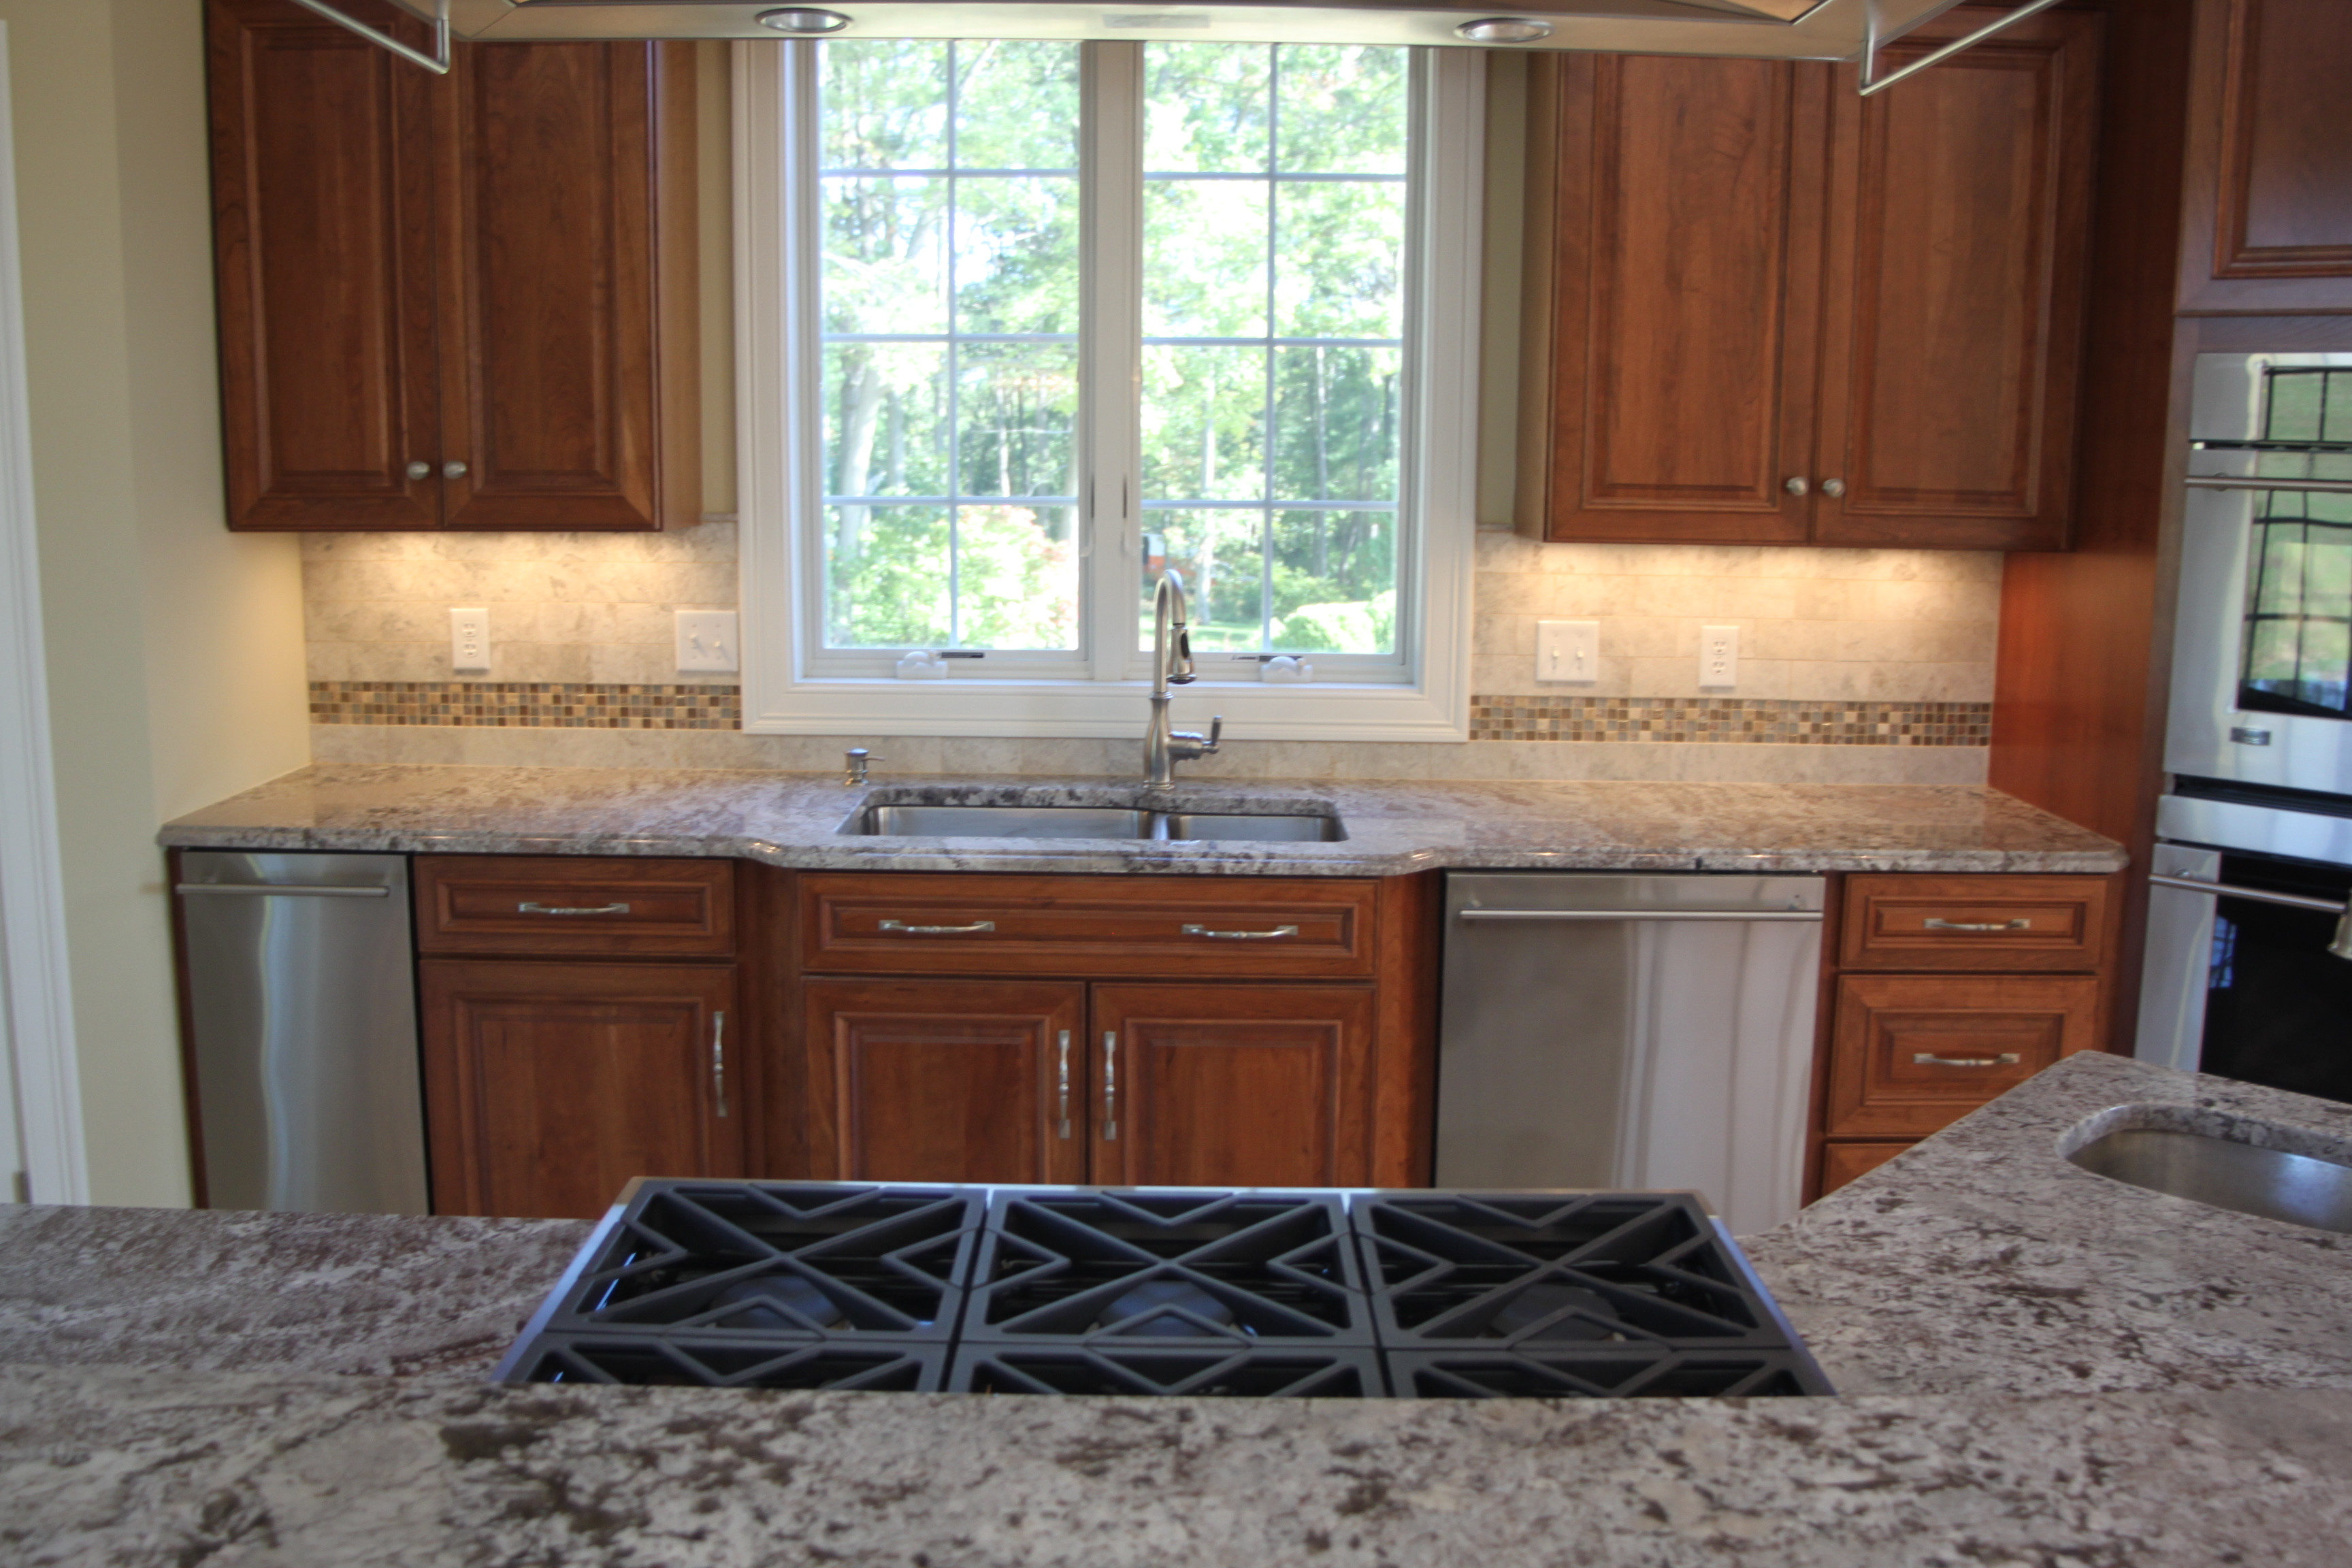 how to match hardwood floors of should your flooring match your kitchen cabinets or countertops inside should your flooring match your kitchen cabinets or countertops